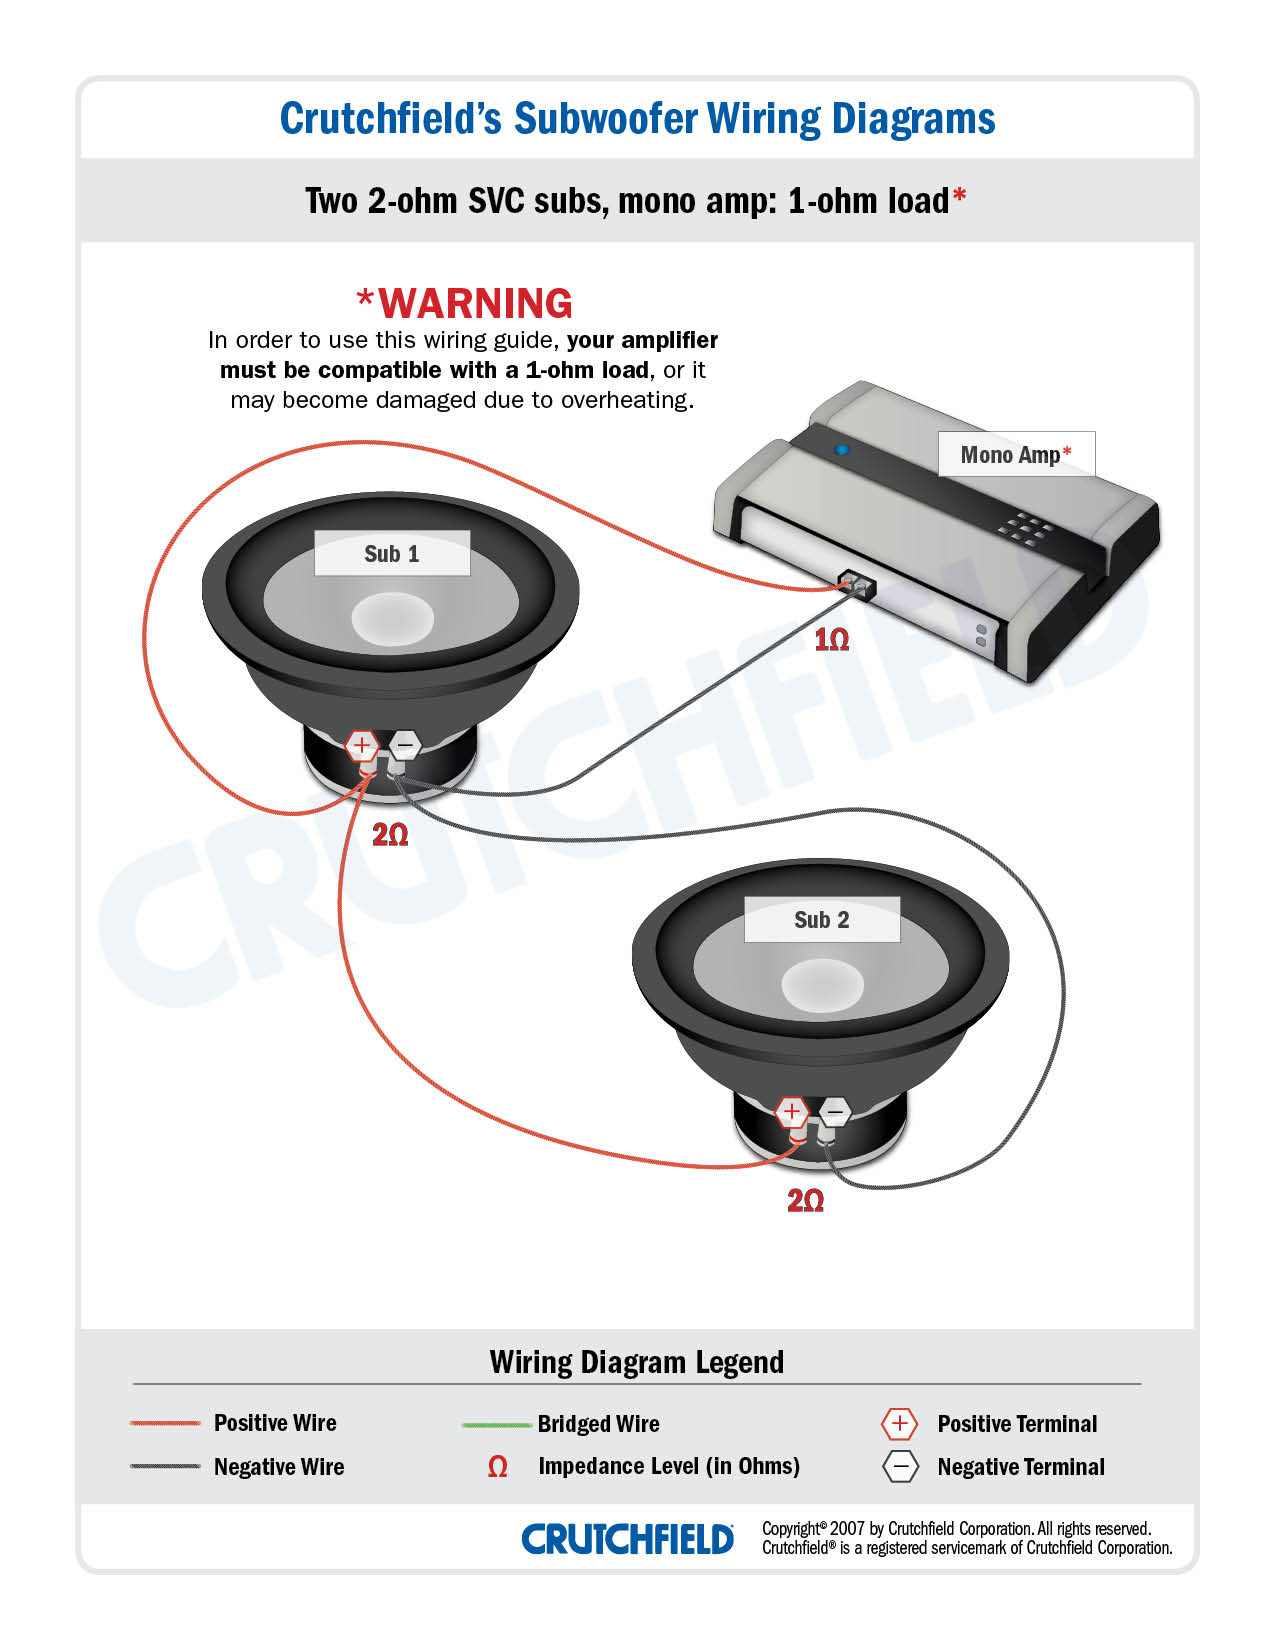 subwoofer wiring diagrams how to wire your subs rh crutchfield com dual 2 ohm subwoofer wiring 2 svc 2 ohm subs wiring